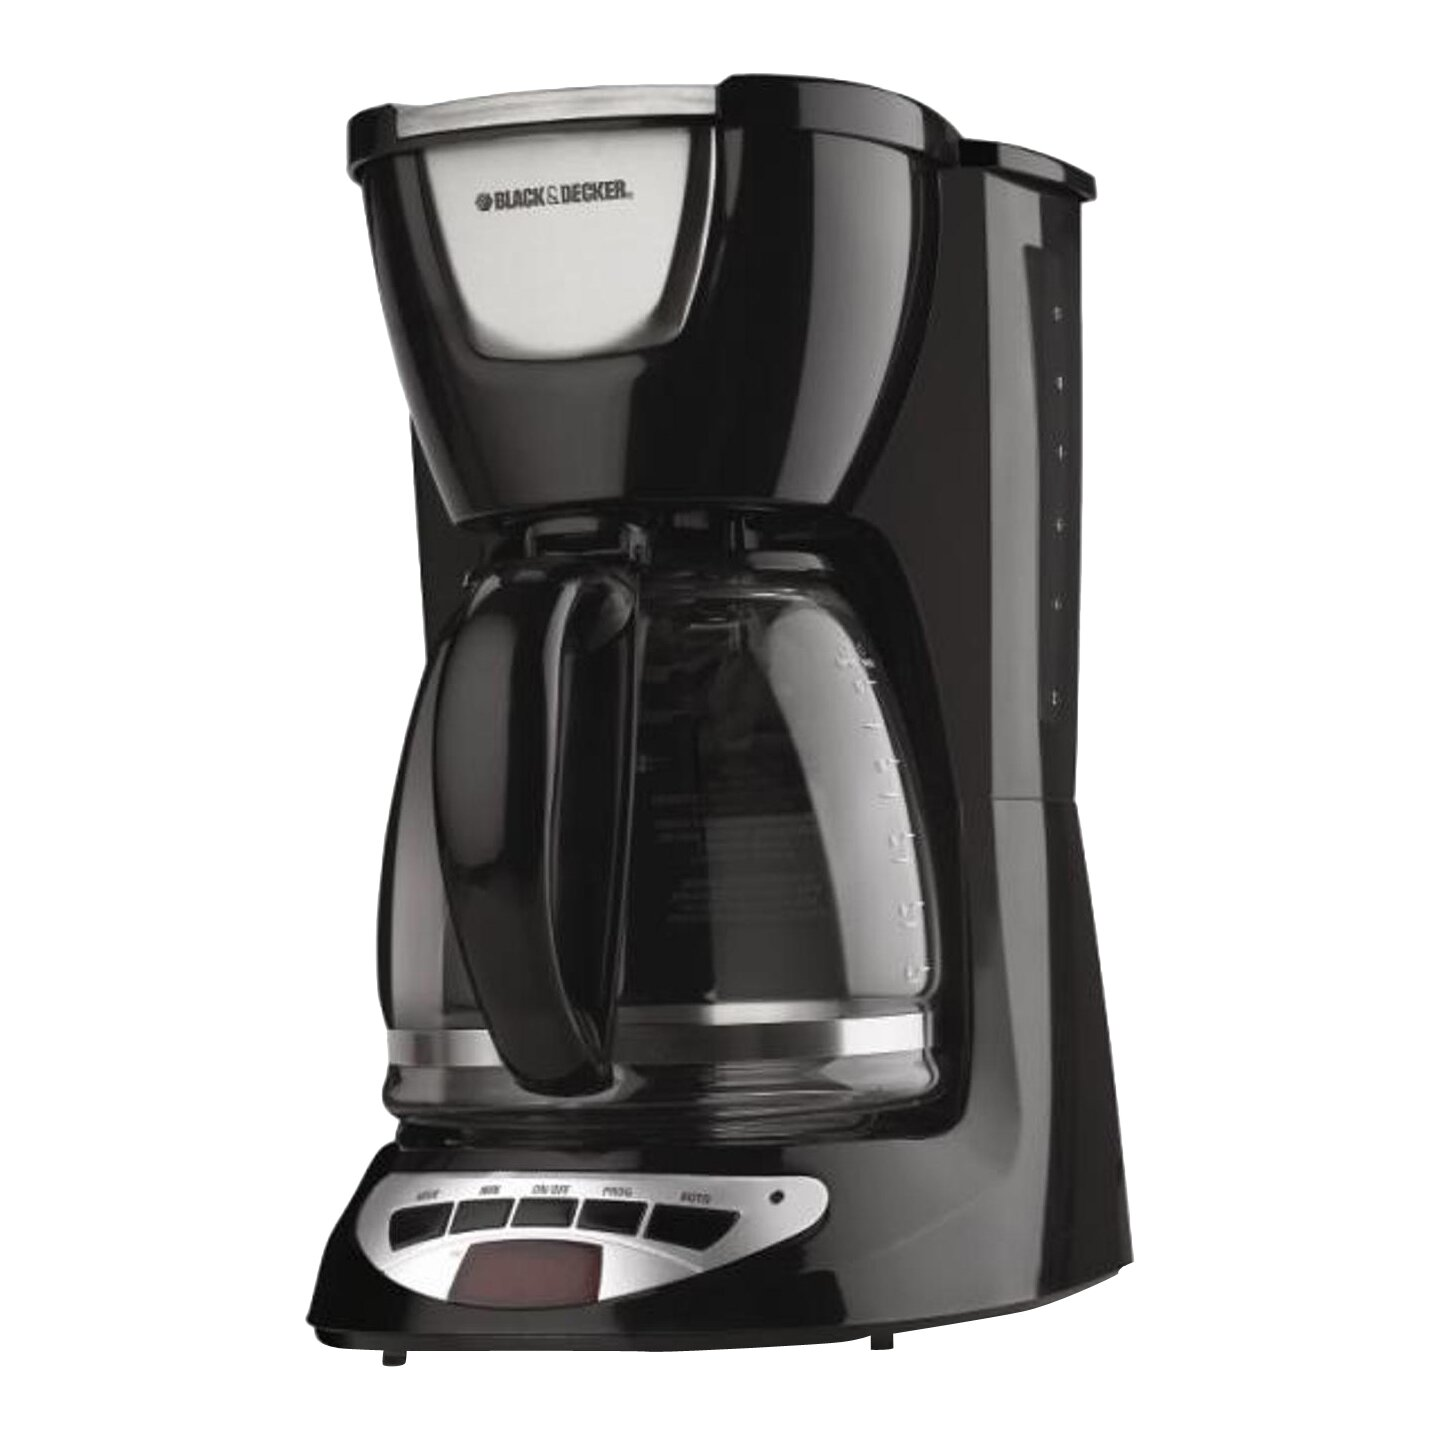 Black and decker coffee maker 12 cup programmable - Black Amp Decker 12 Cup Programmable Coffee Maker